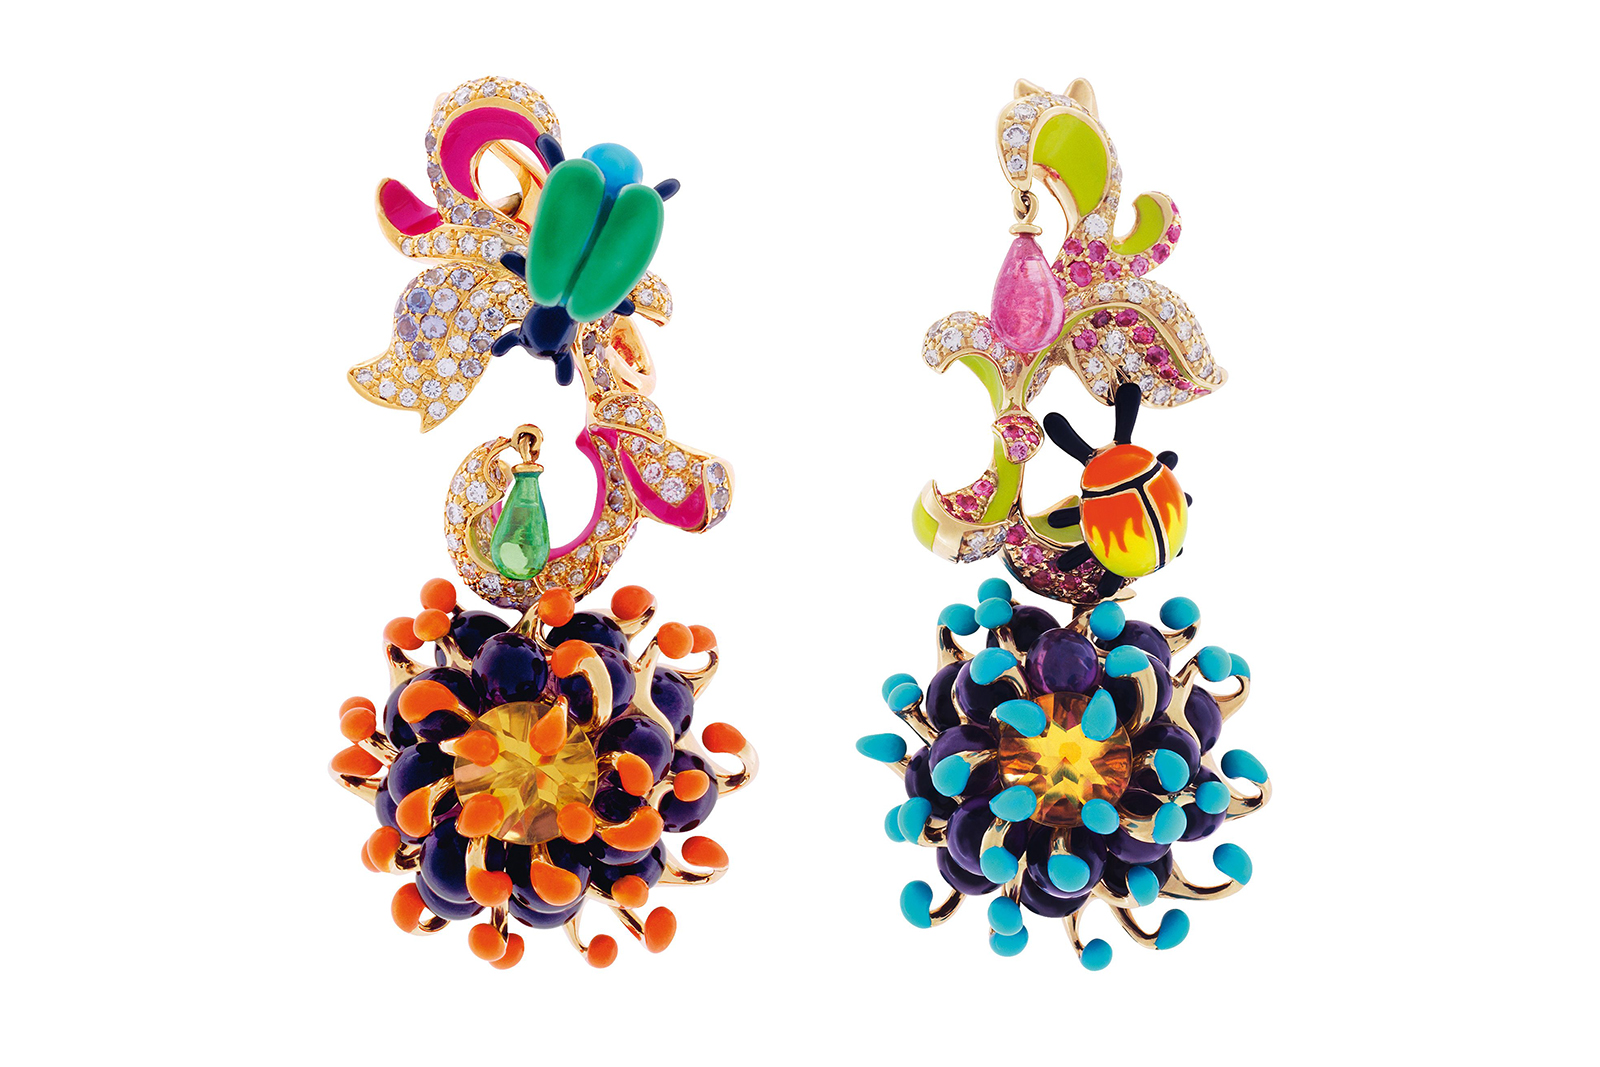 Dior 'Milly Carnivora Egratigna Angélique' earrings with lacquer, diamonds, sapphires, emerald and citrine in 18k yellow gold